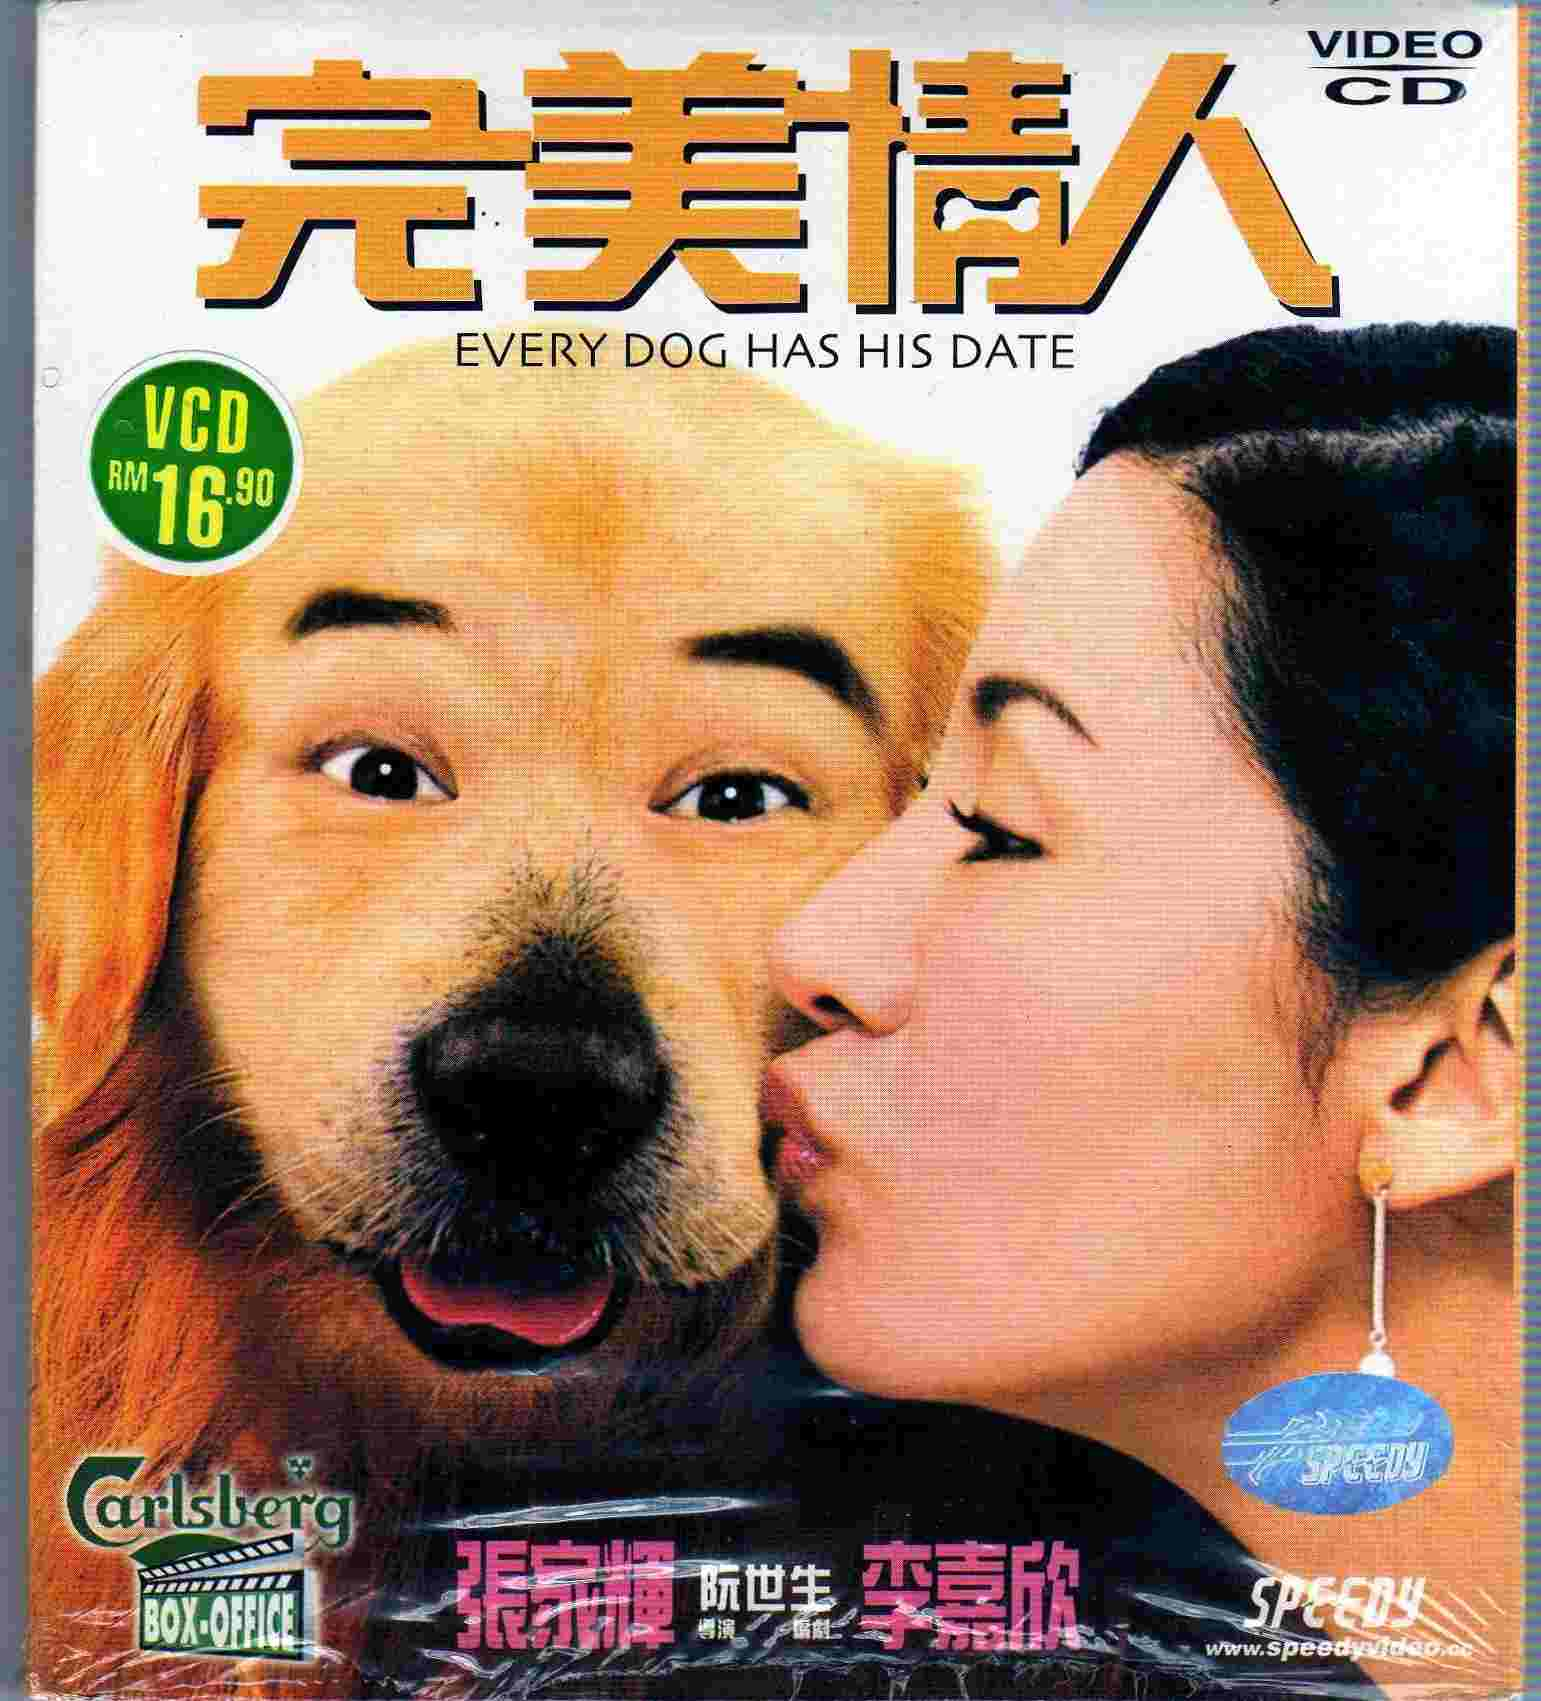 ORIGINAL Every Dog Has His Date VCD